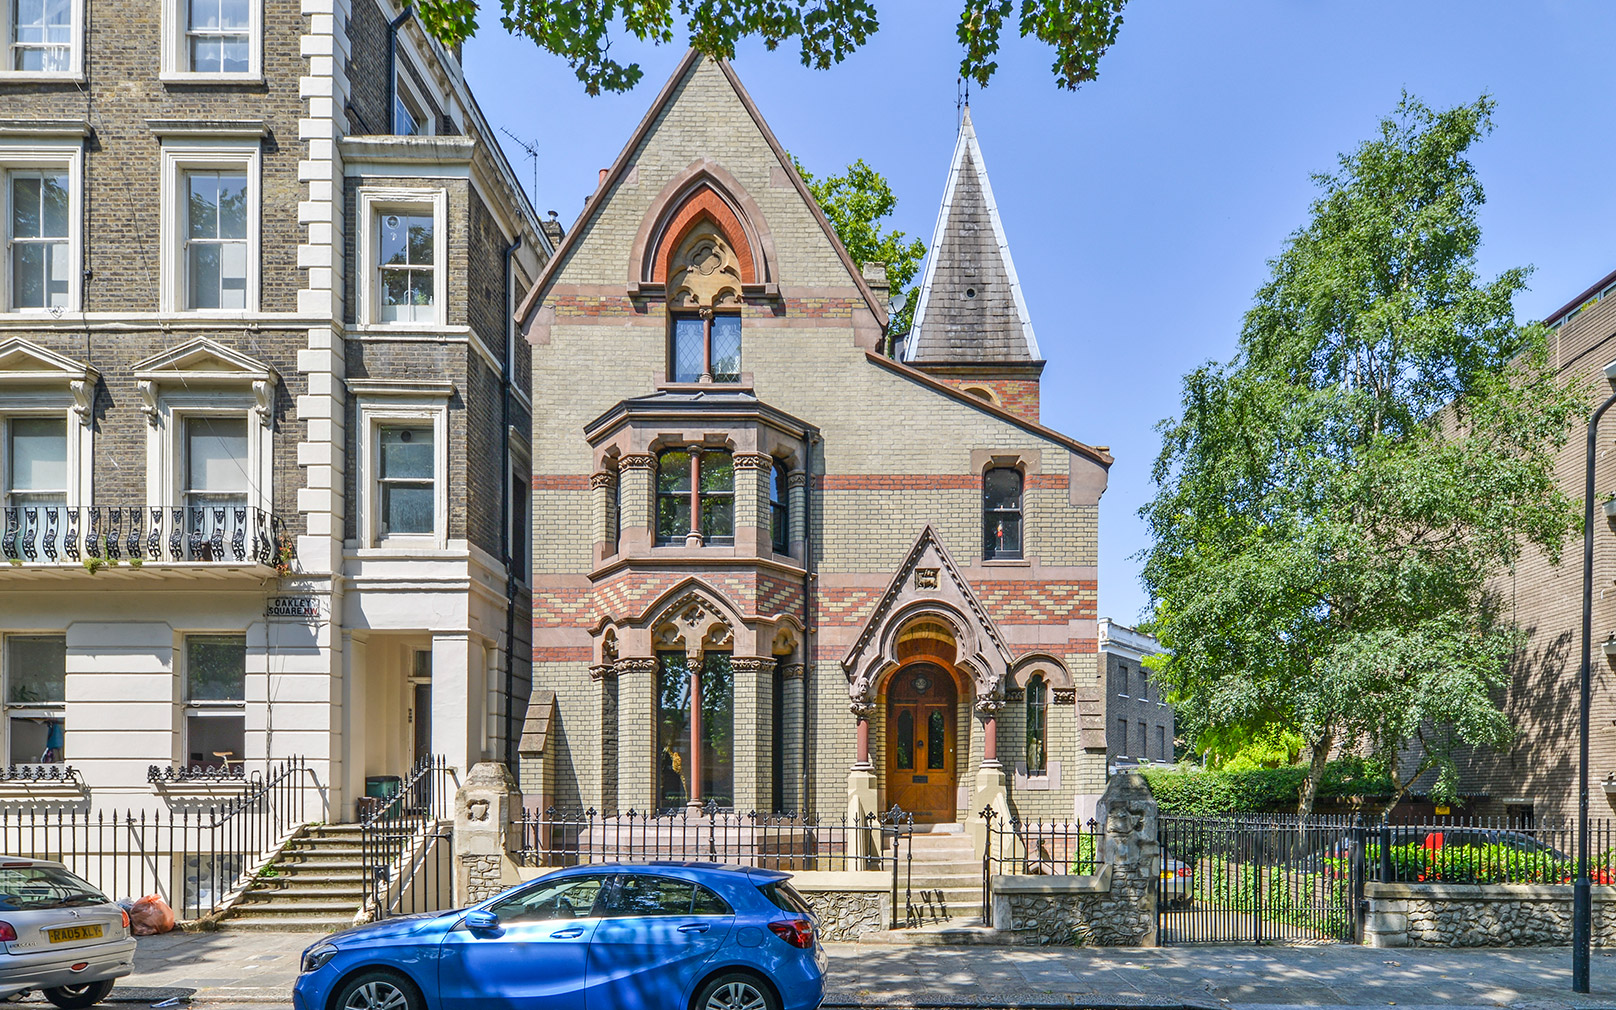 The London home and studio of the late visual artist Nancy Fouts is on sale for £3,999,950 – and it is packed full of Victorian neo-gothic details.